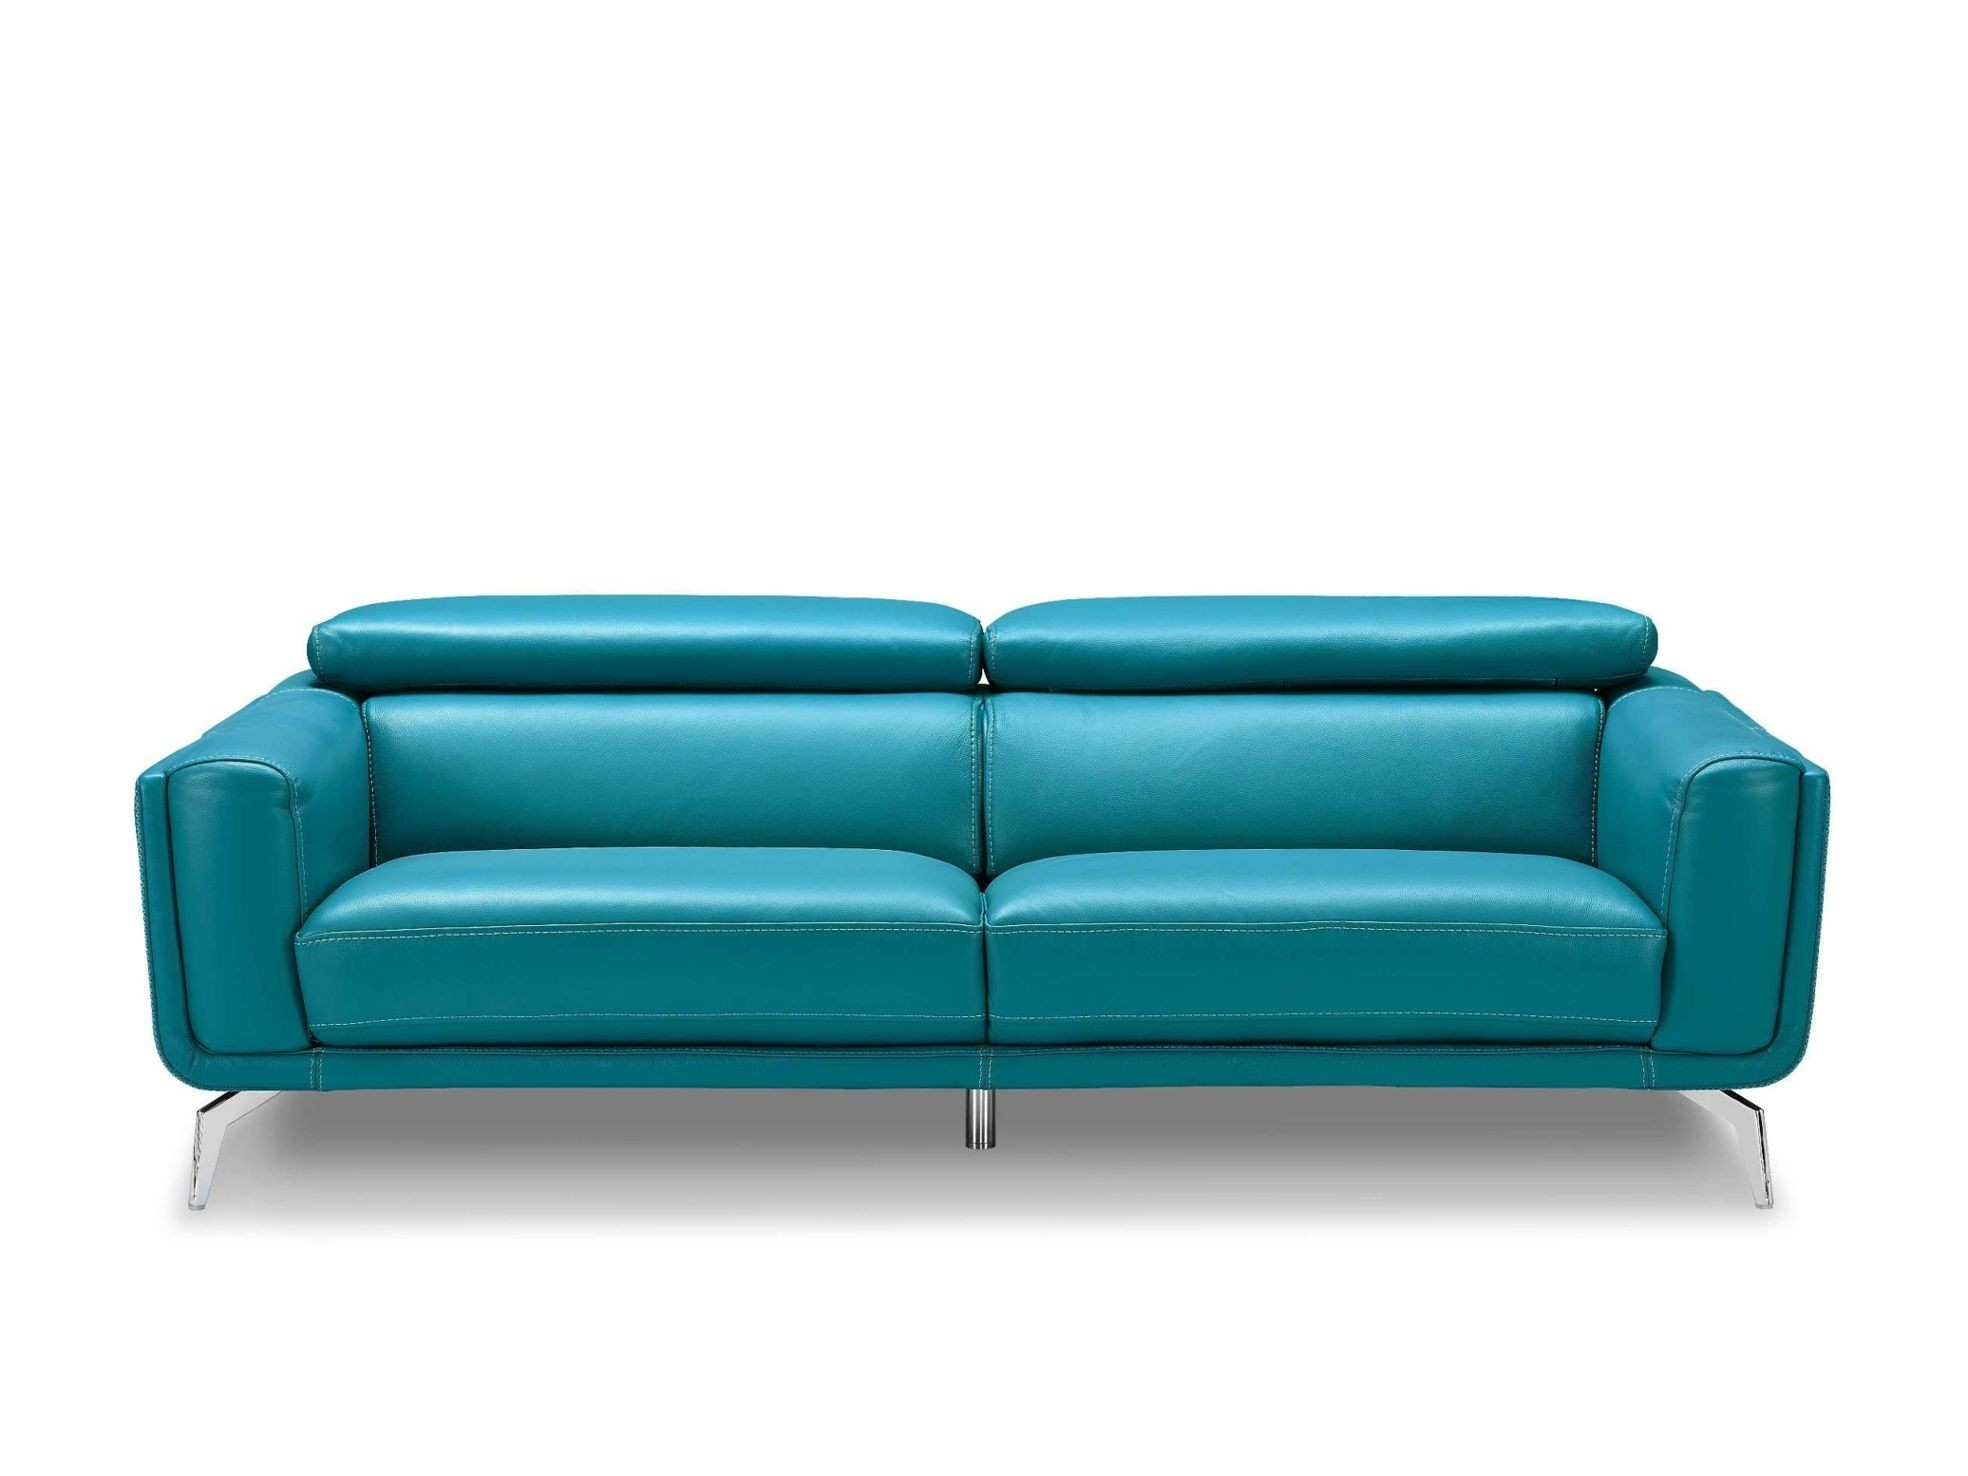 Well Known High Point Nc Sectional Sofas Regarding Sofa Modernr Ideas For Living Room Hupehome Contemporary Furniture (View 13 of 20)